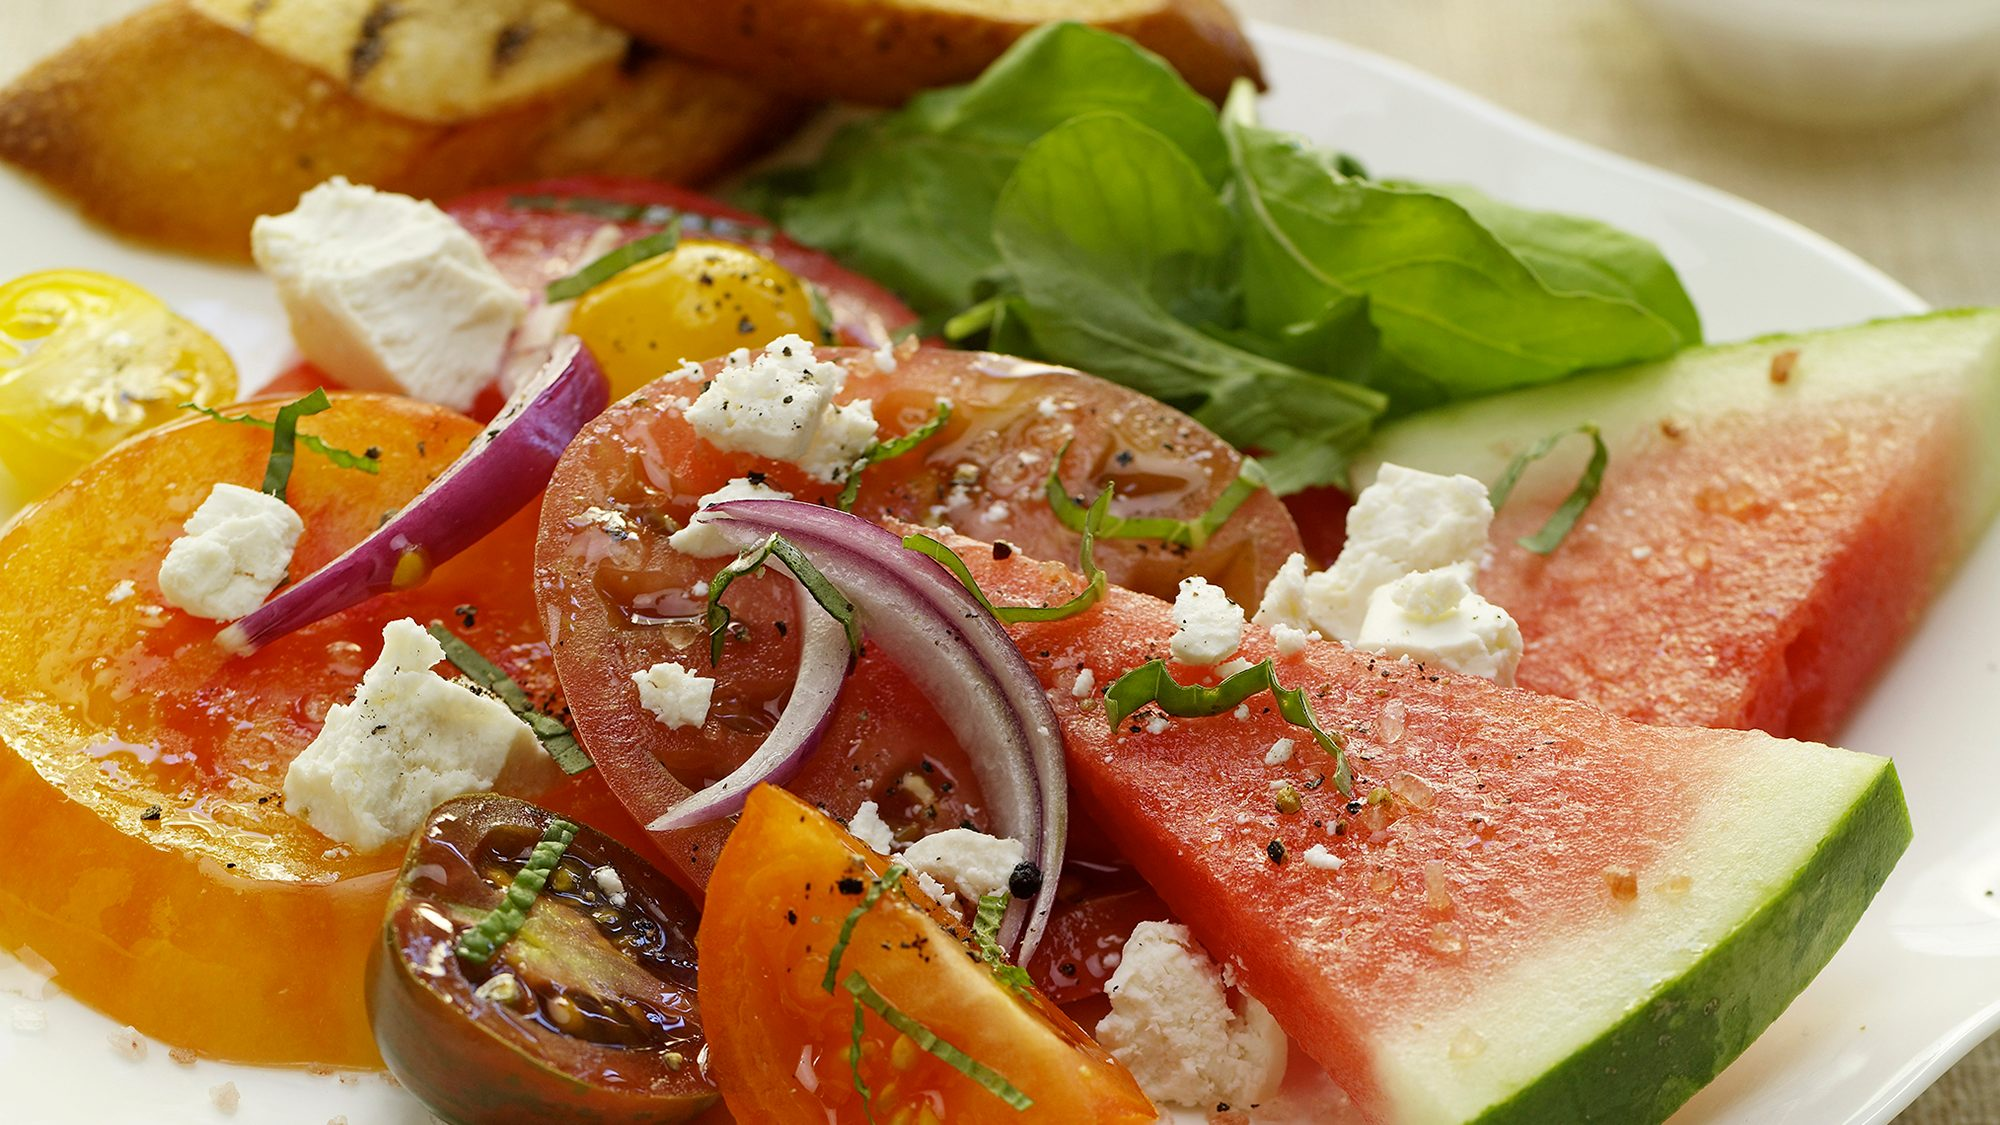 McCormick Heirloom Tomato and Watermelon Salad with Ricotta Salata